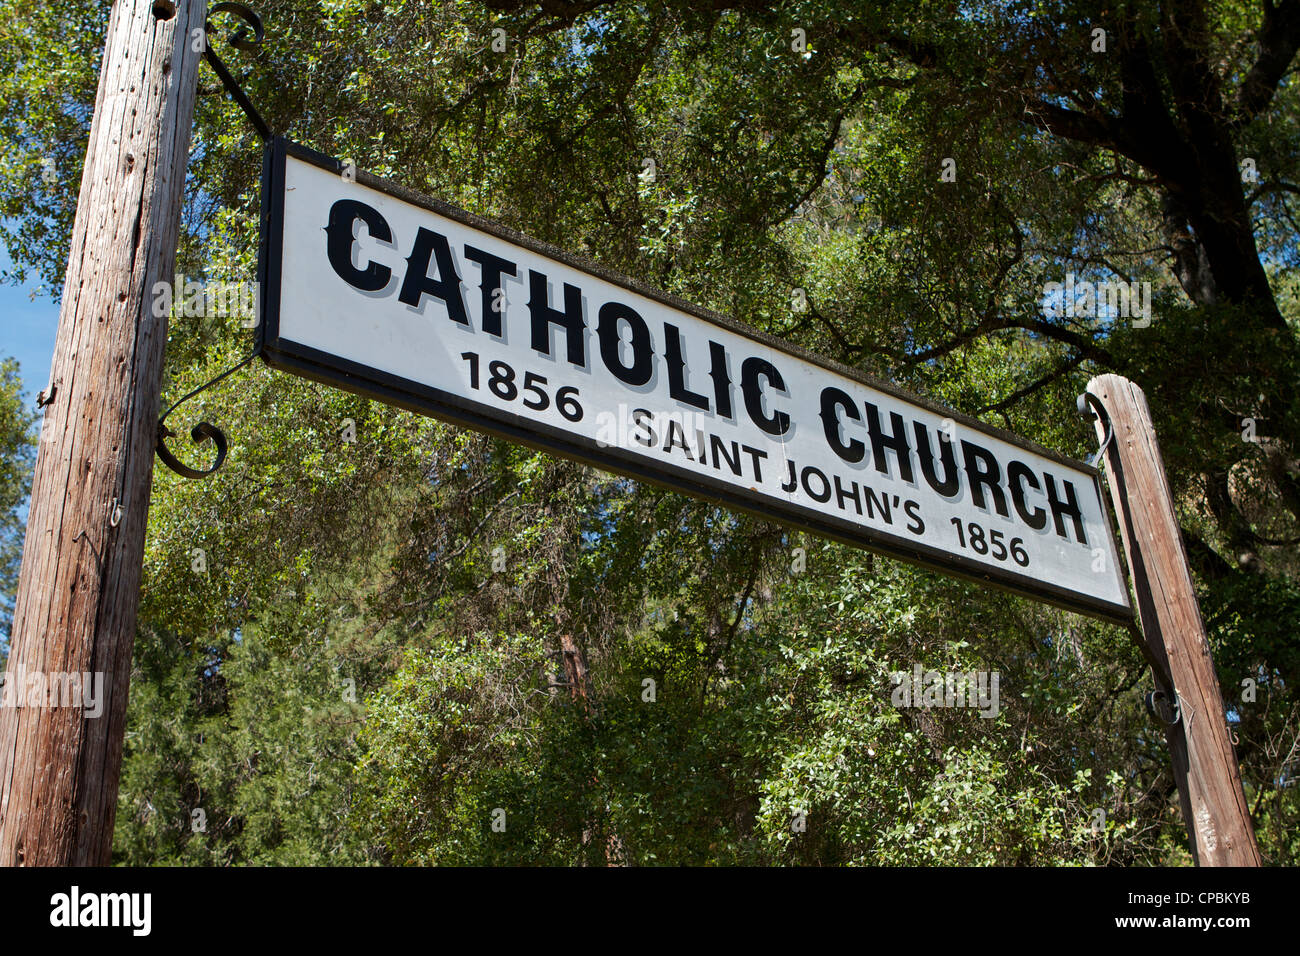 the sign at the Catholic church of St Johns at the Marshall Gold Discovery state historic park in Coloma California - Stock Image